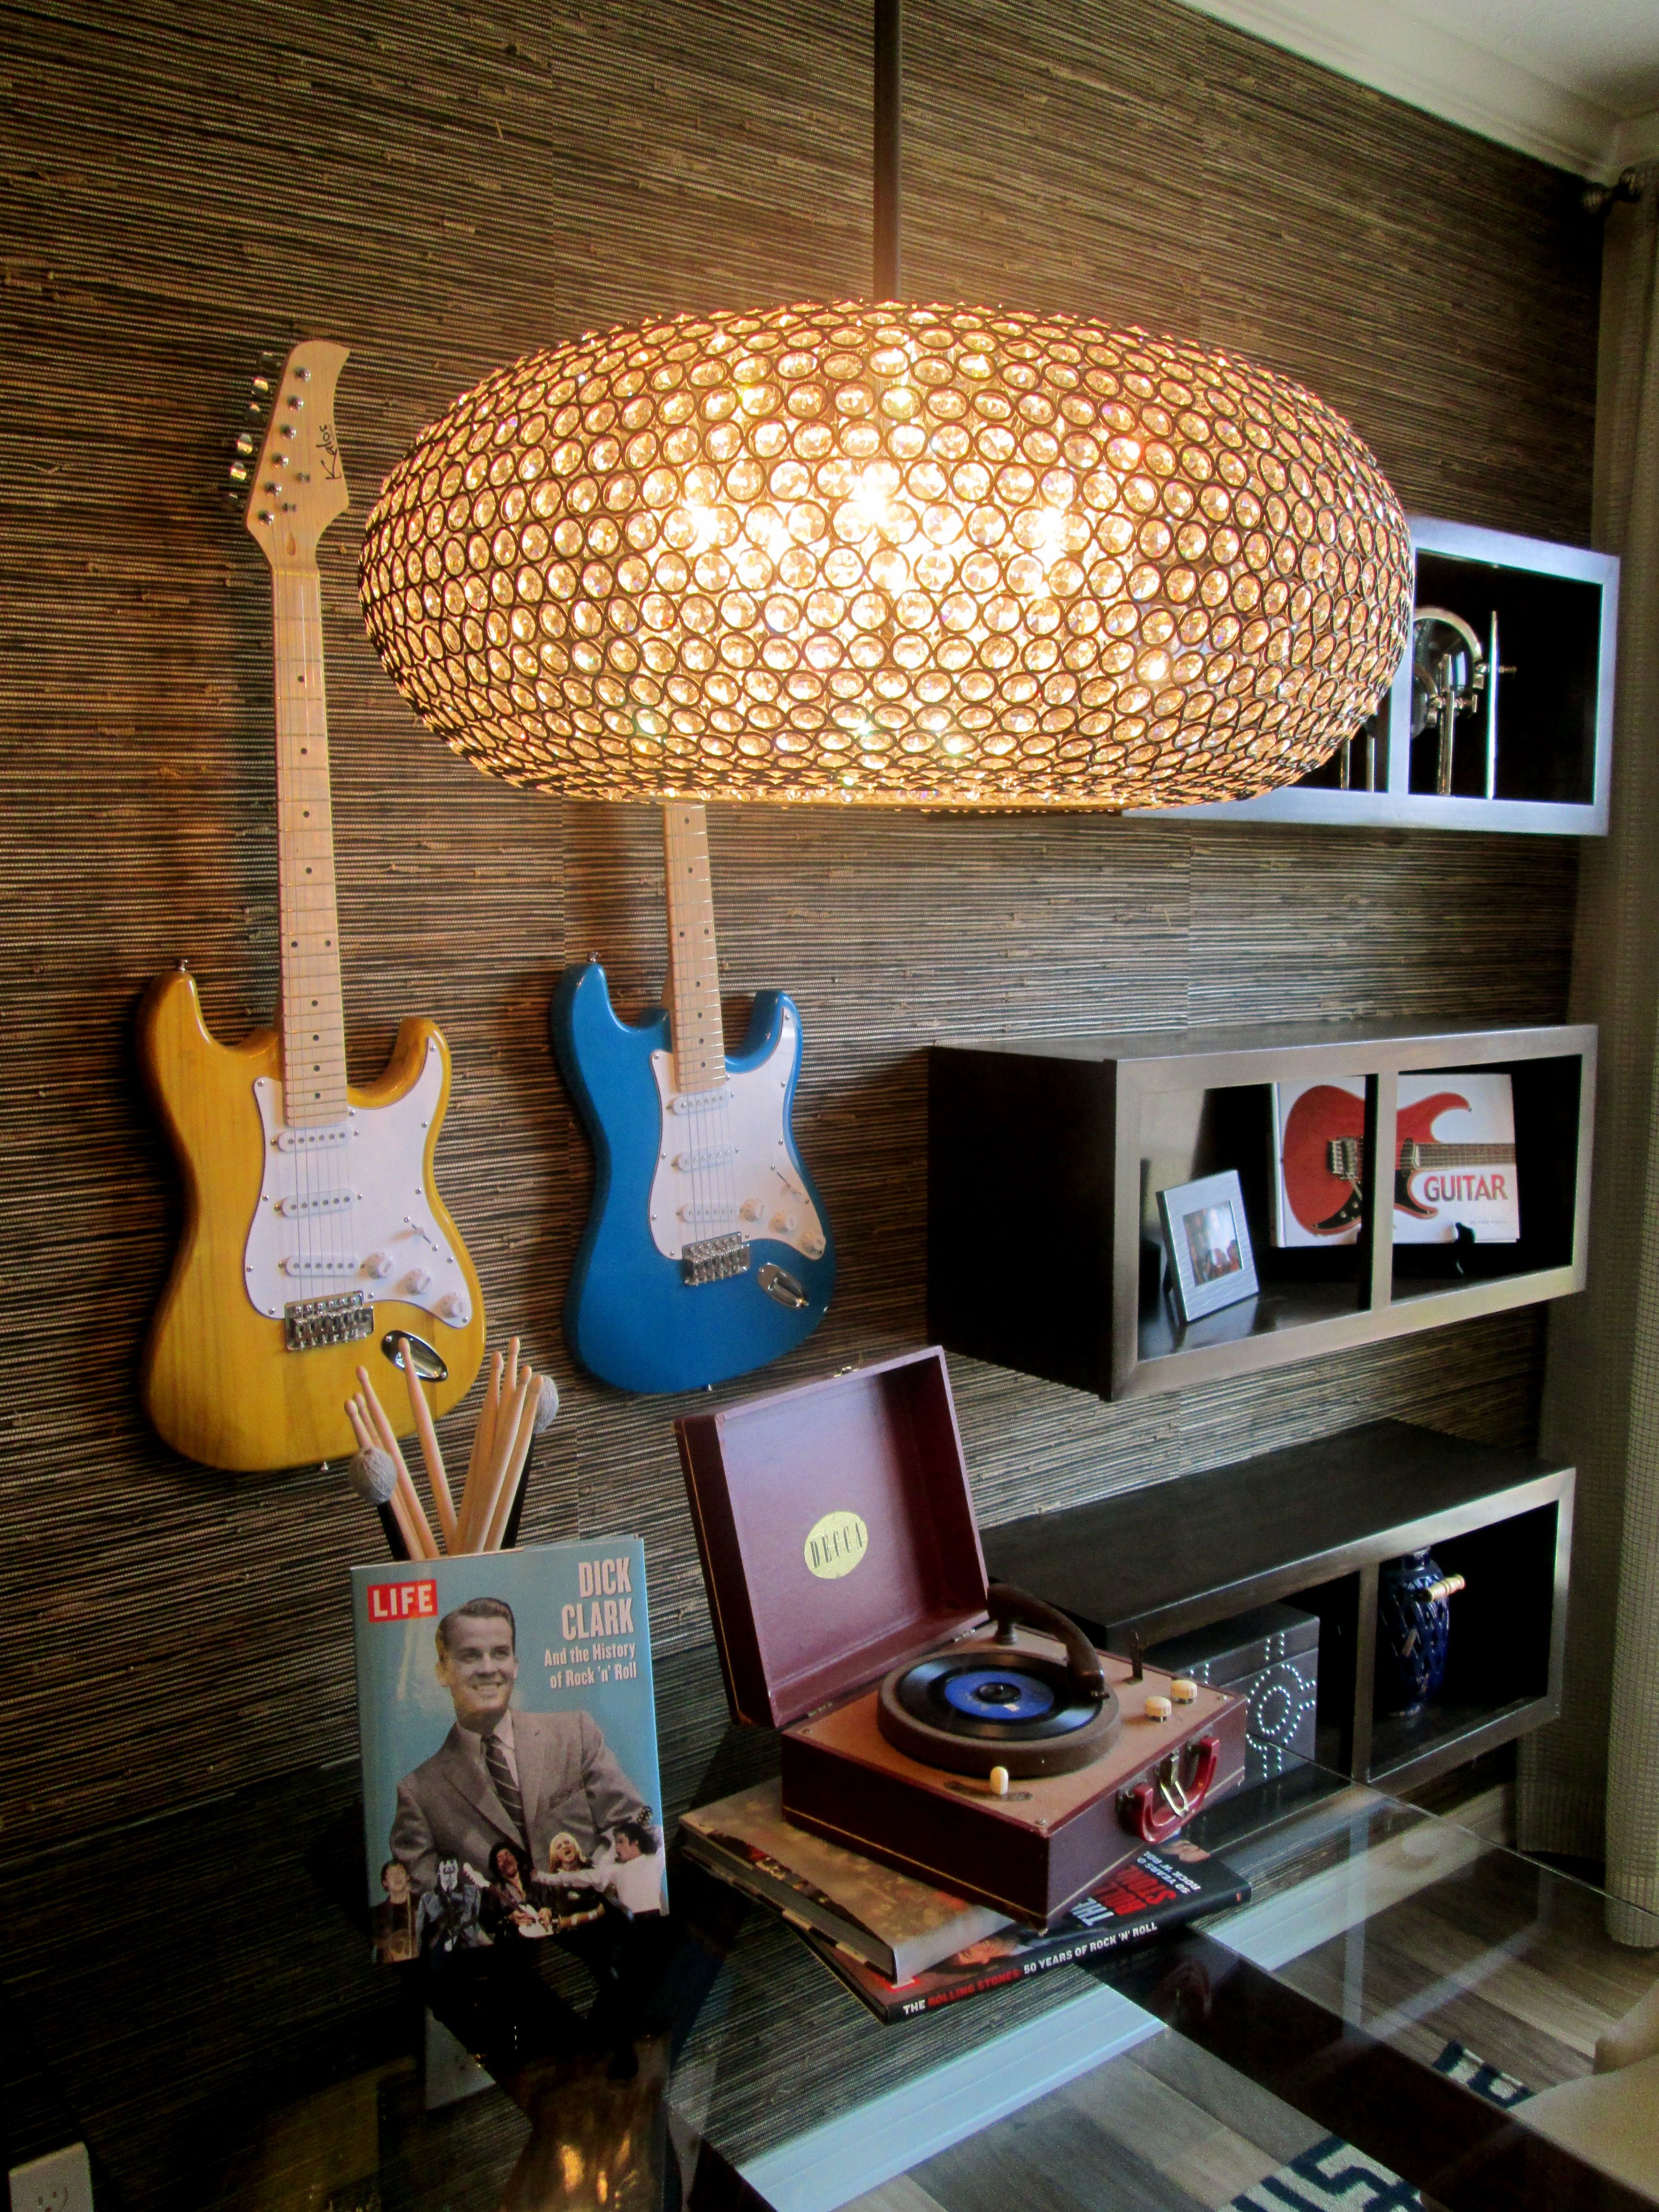 Guitar Decor For Bedroom Music Inspiration For The Home Surrounded By Sound